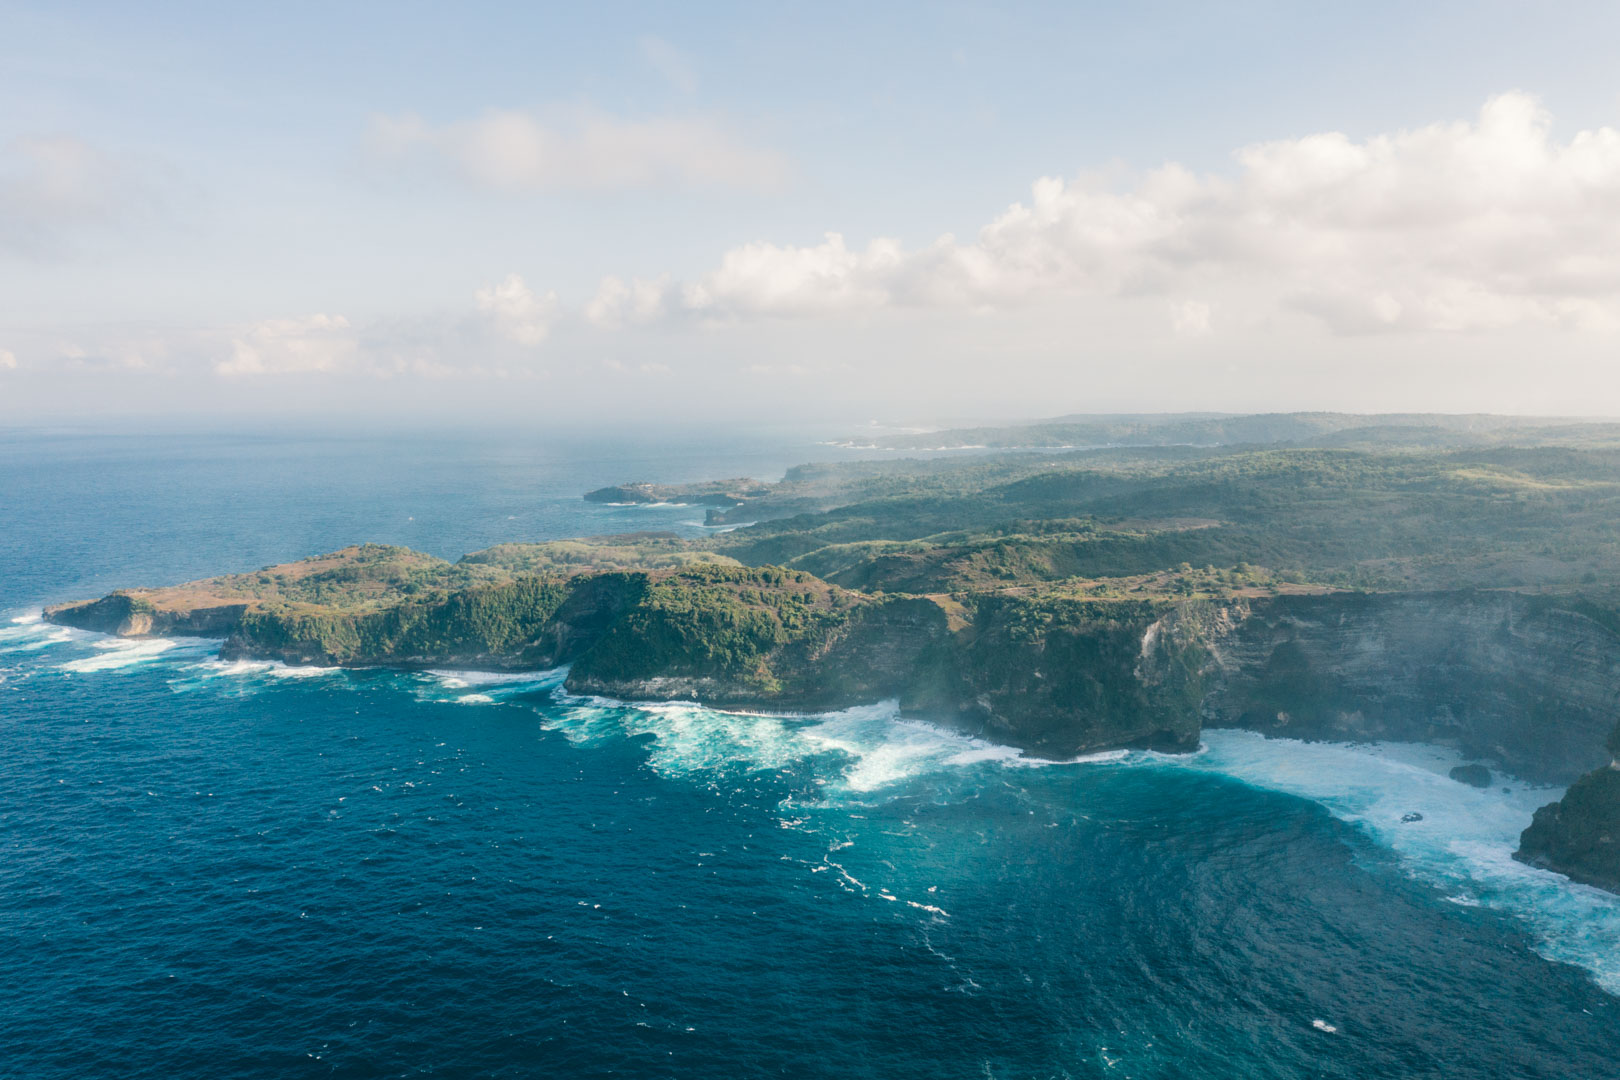 Nusa Penida landscape from Kelingking